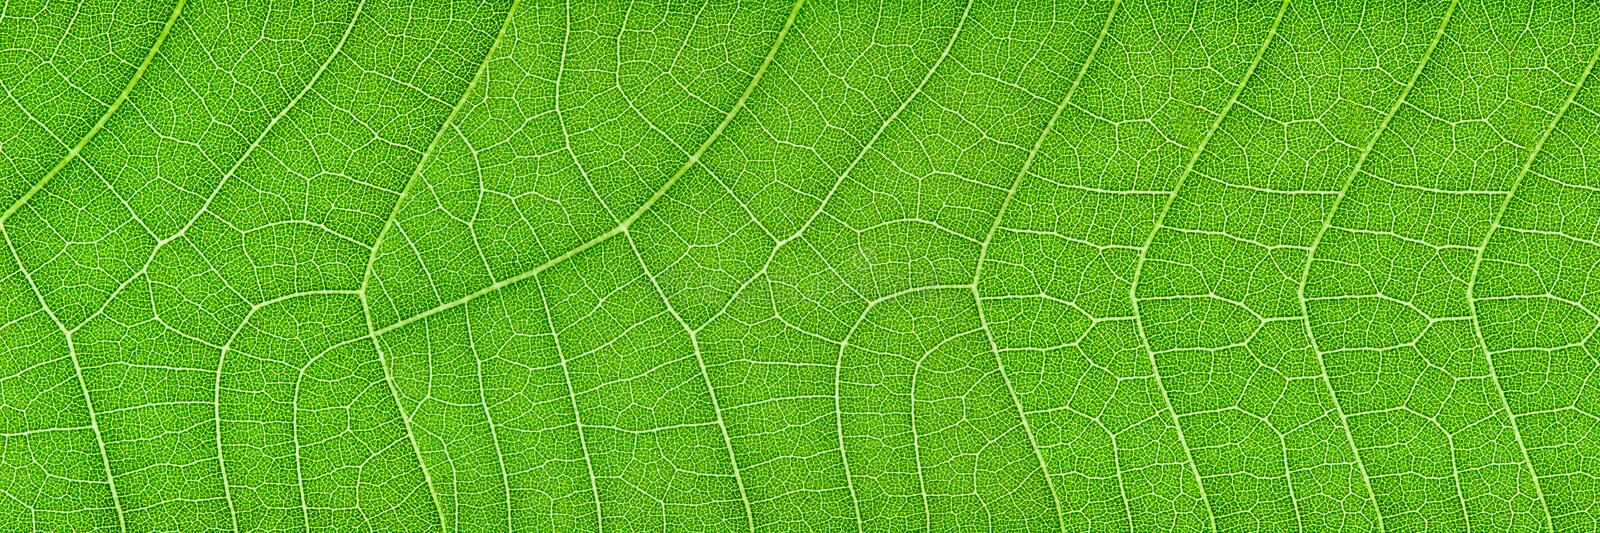 horizontal green leaf texture for pattern and background royalty free stock images